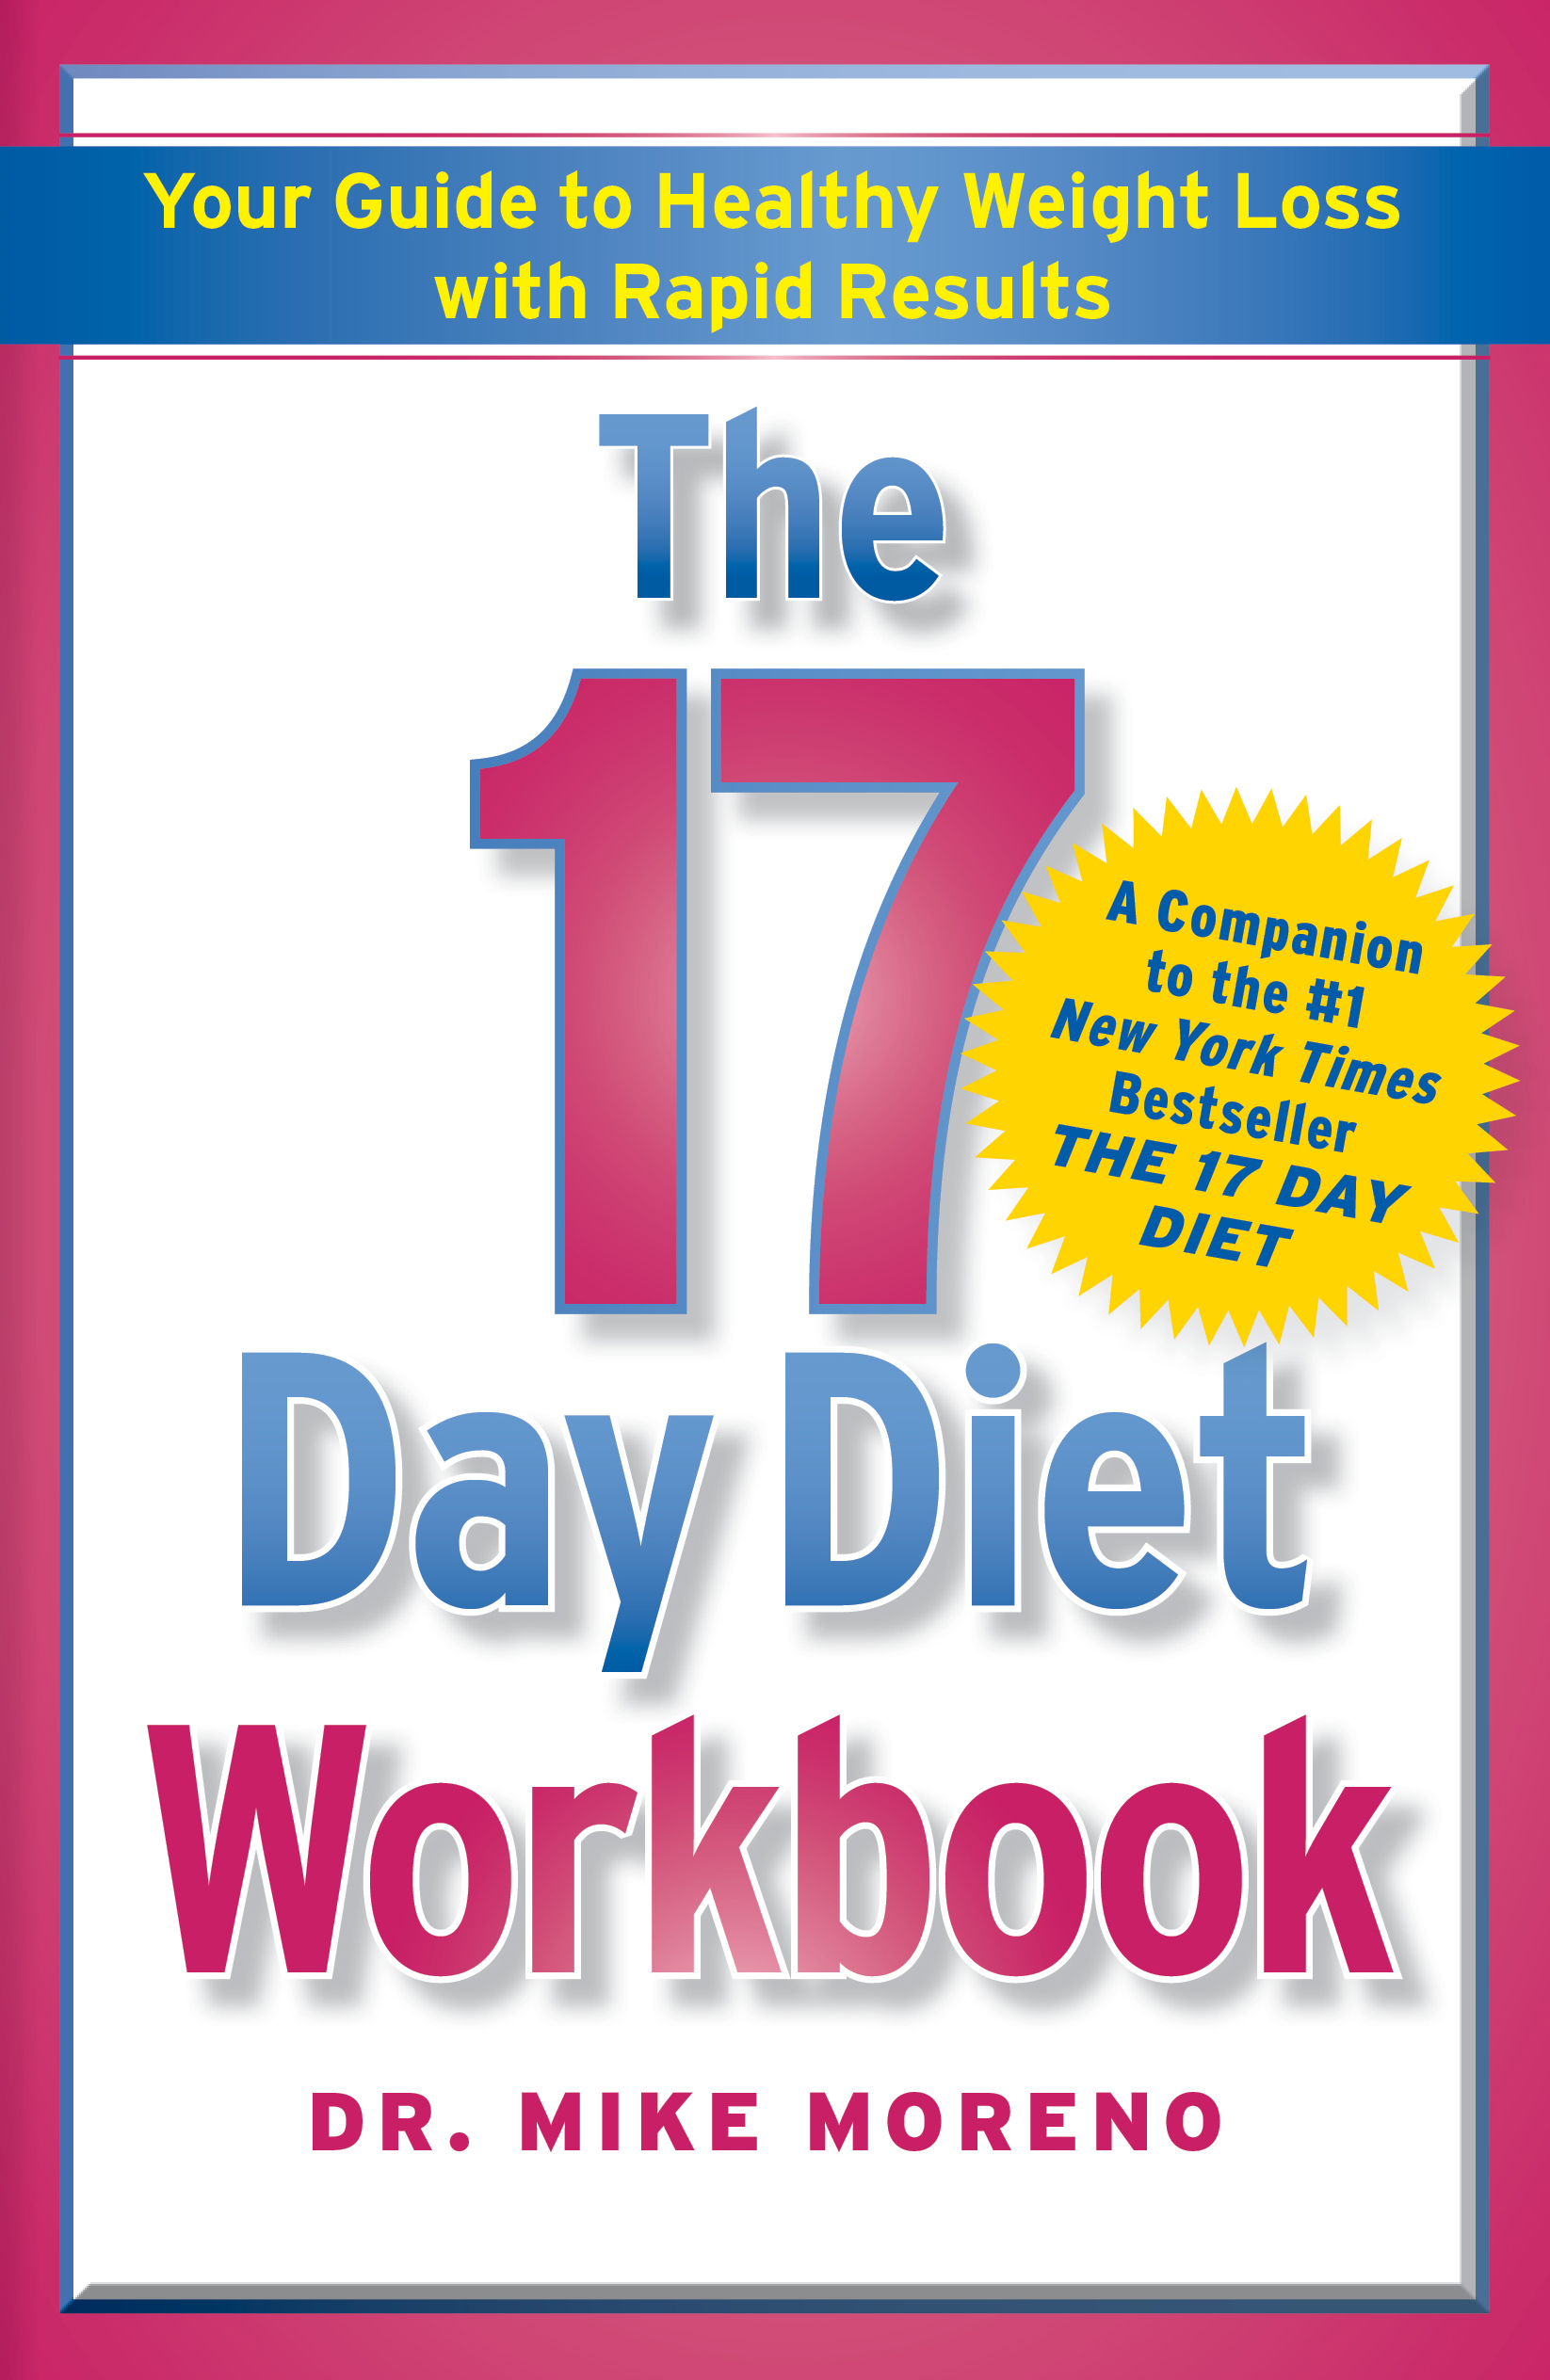 Book Cover Image (jpg): The 17 Day Diet Workbook